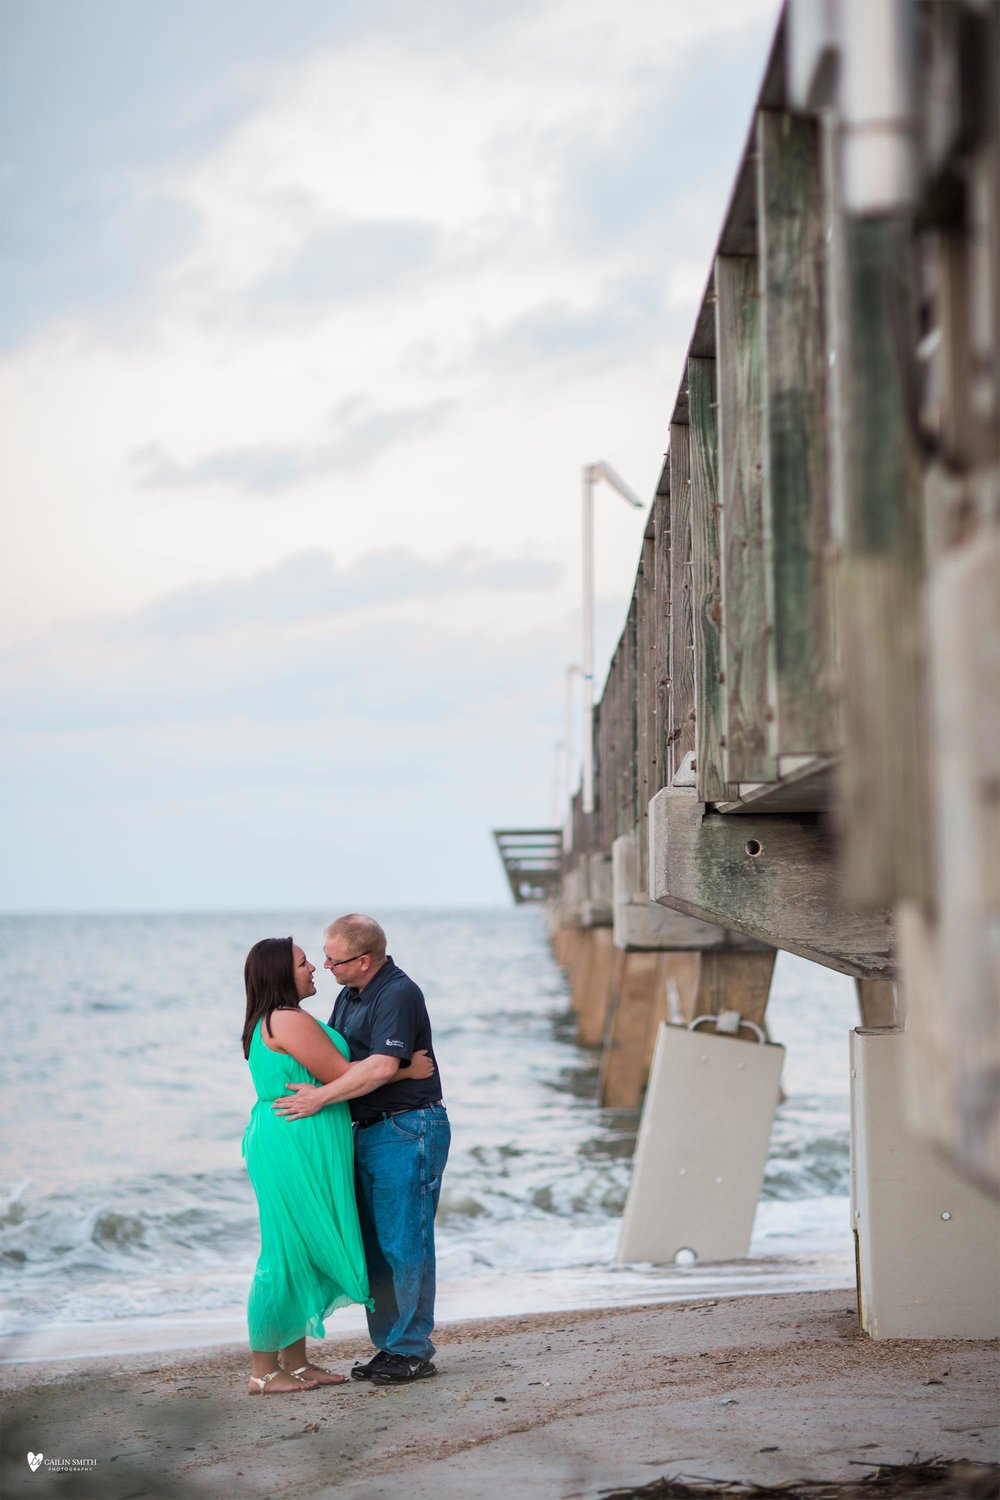 Nikki_Jeremy_Fort_Clinch_Engagement_Photography_15.jpg